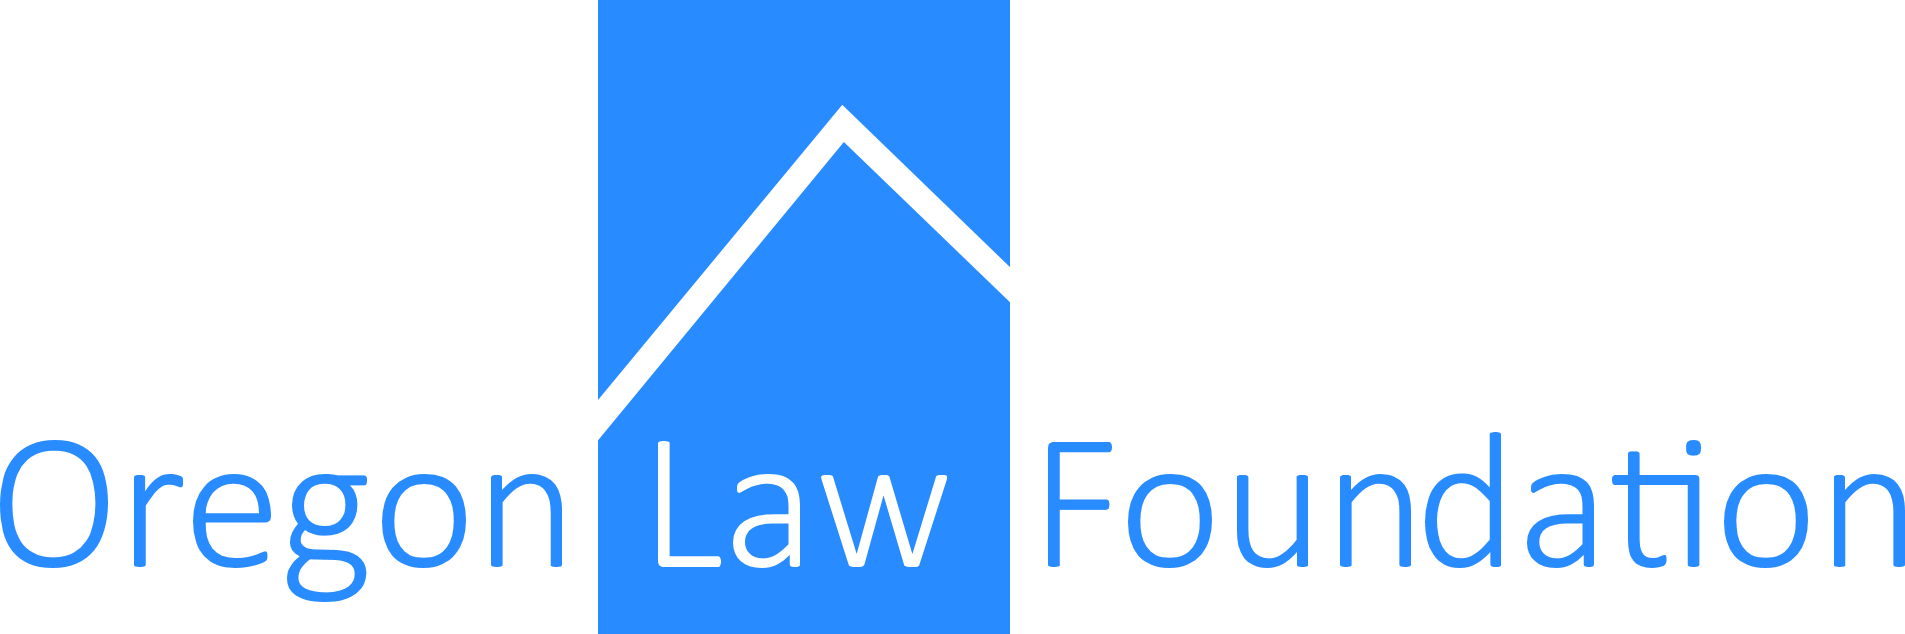 Oregon Law Foundation Logo